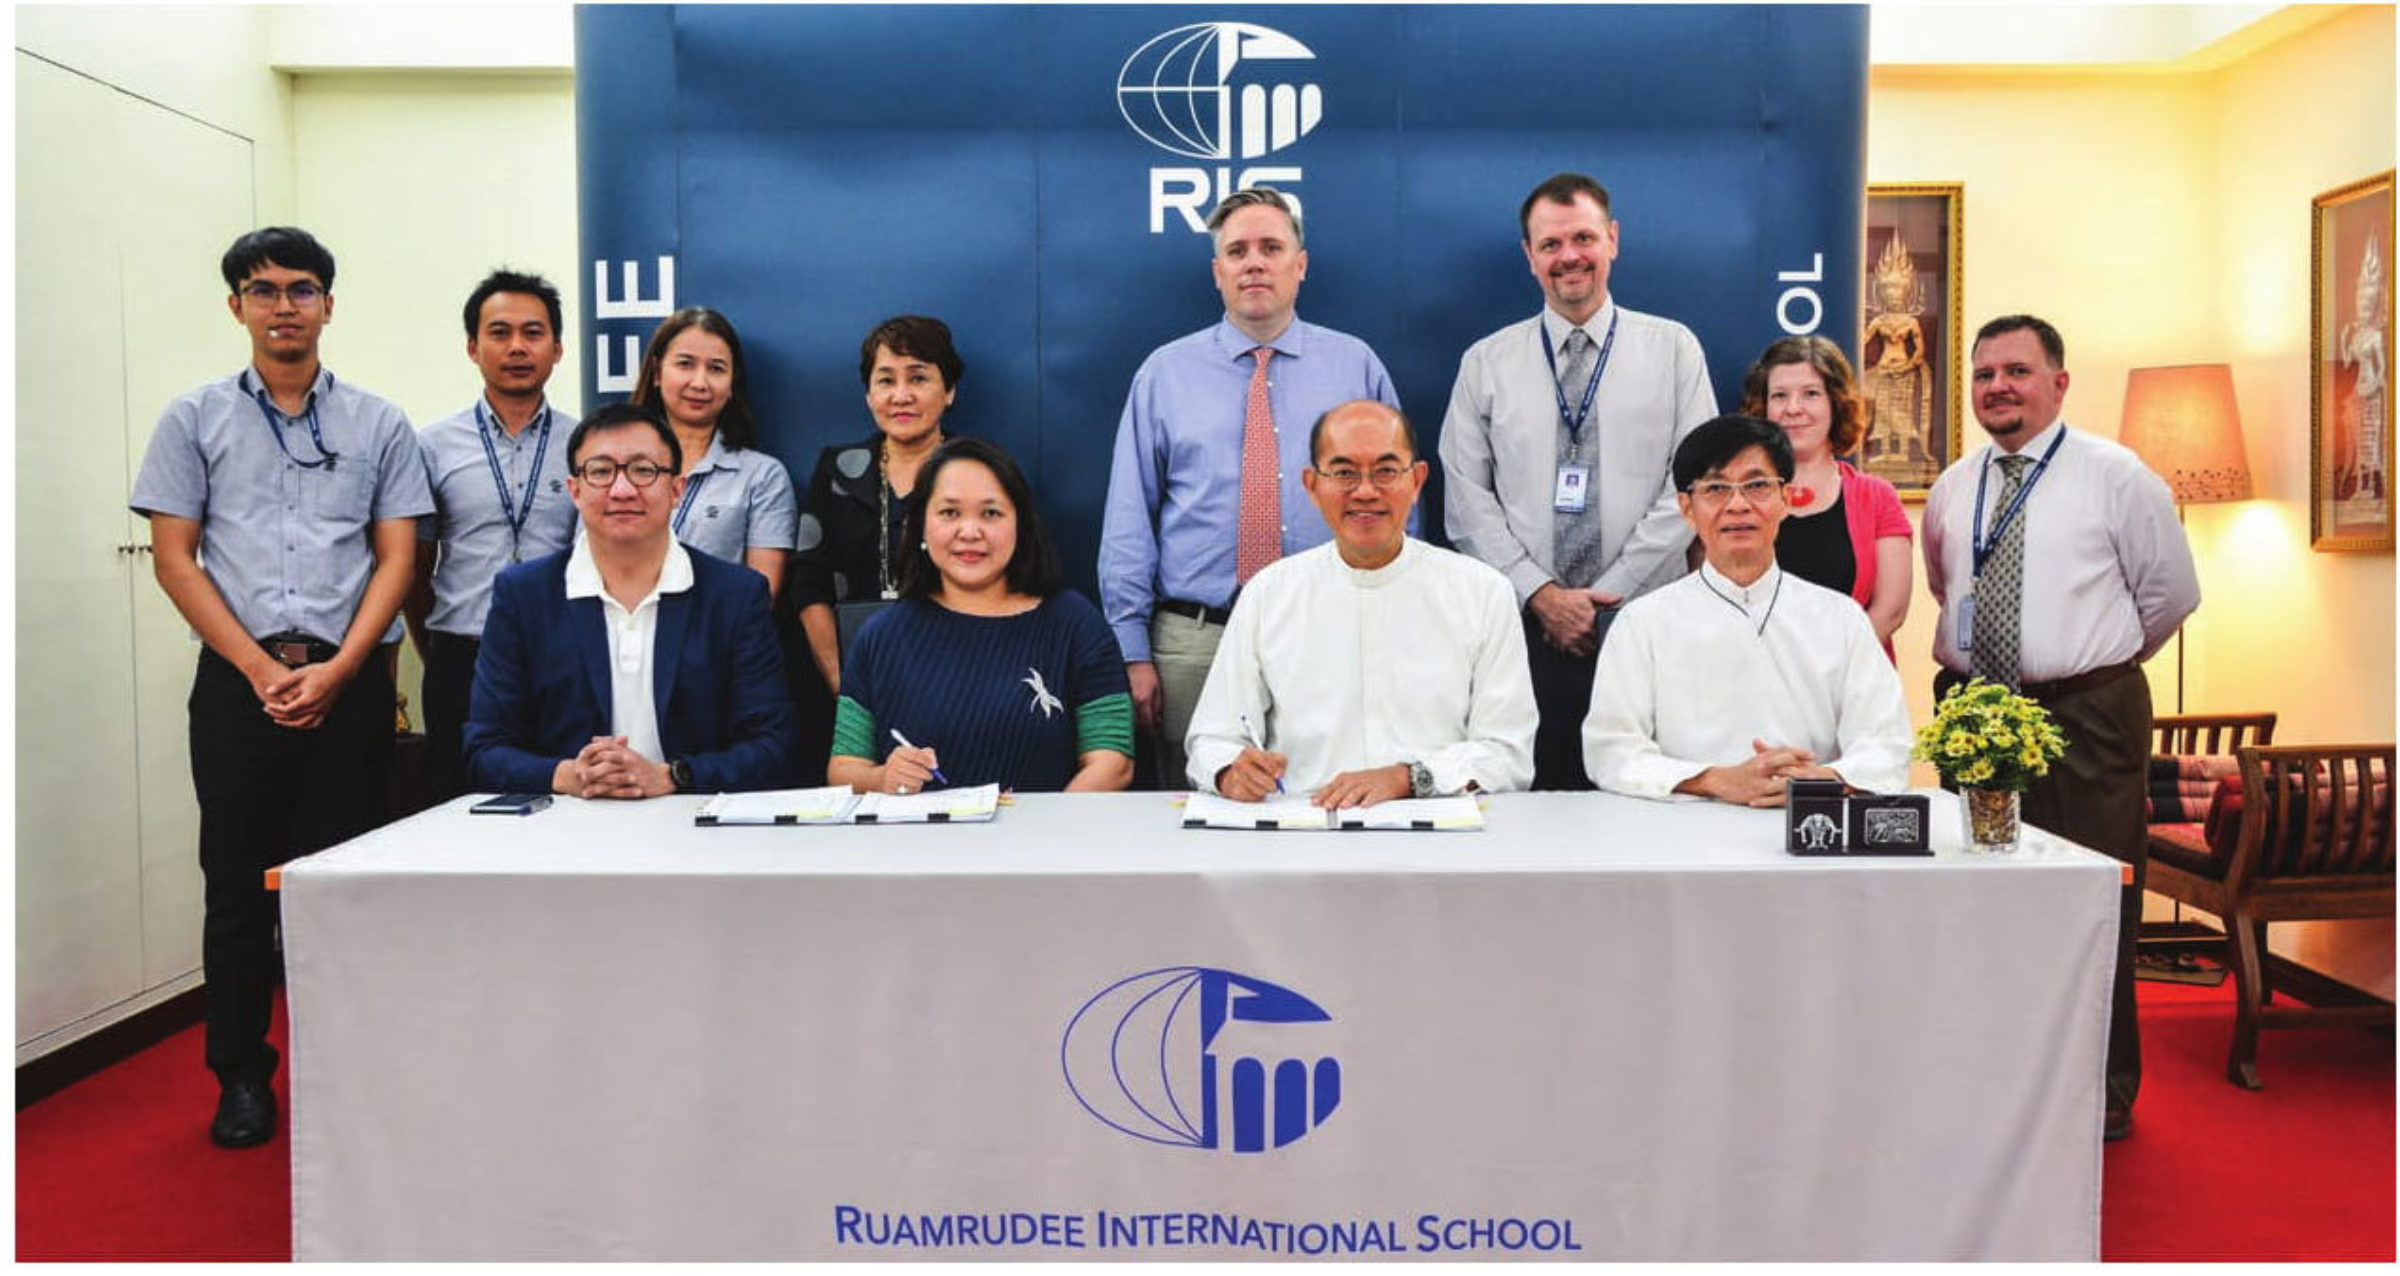 Ruamrudee International School Early Years Campus: Memorandum Of Understanding Signing Ceremony